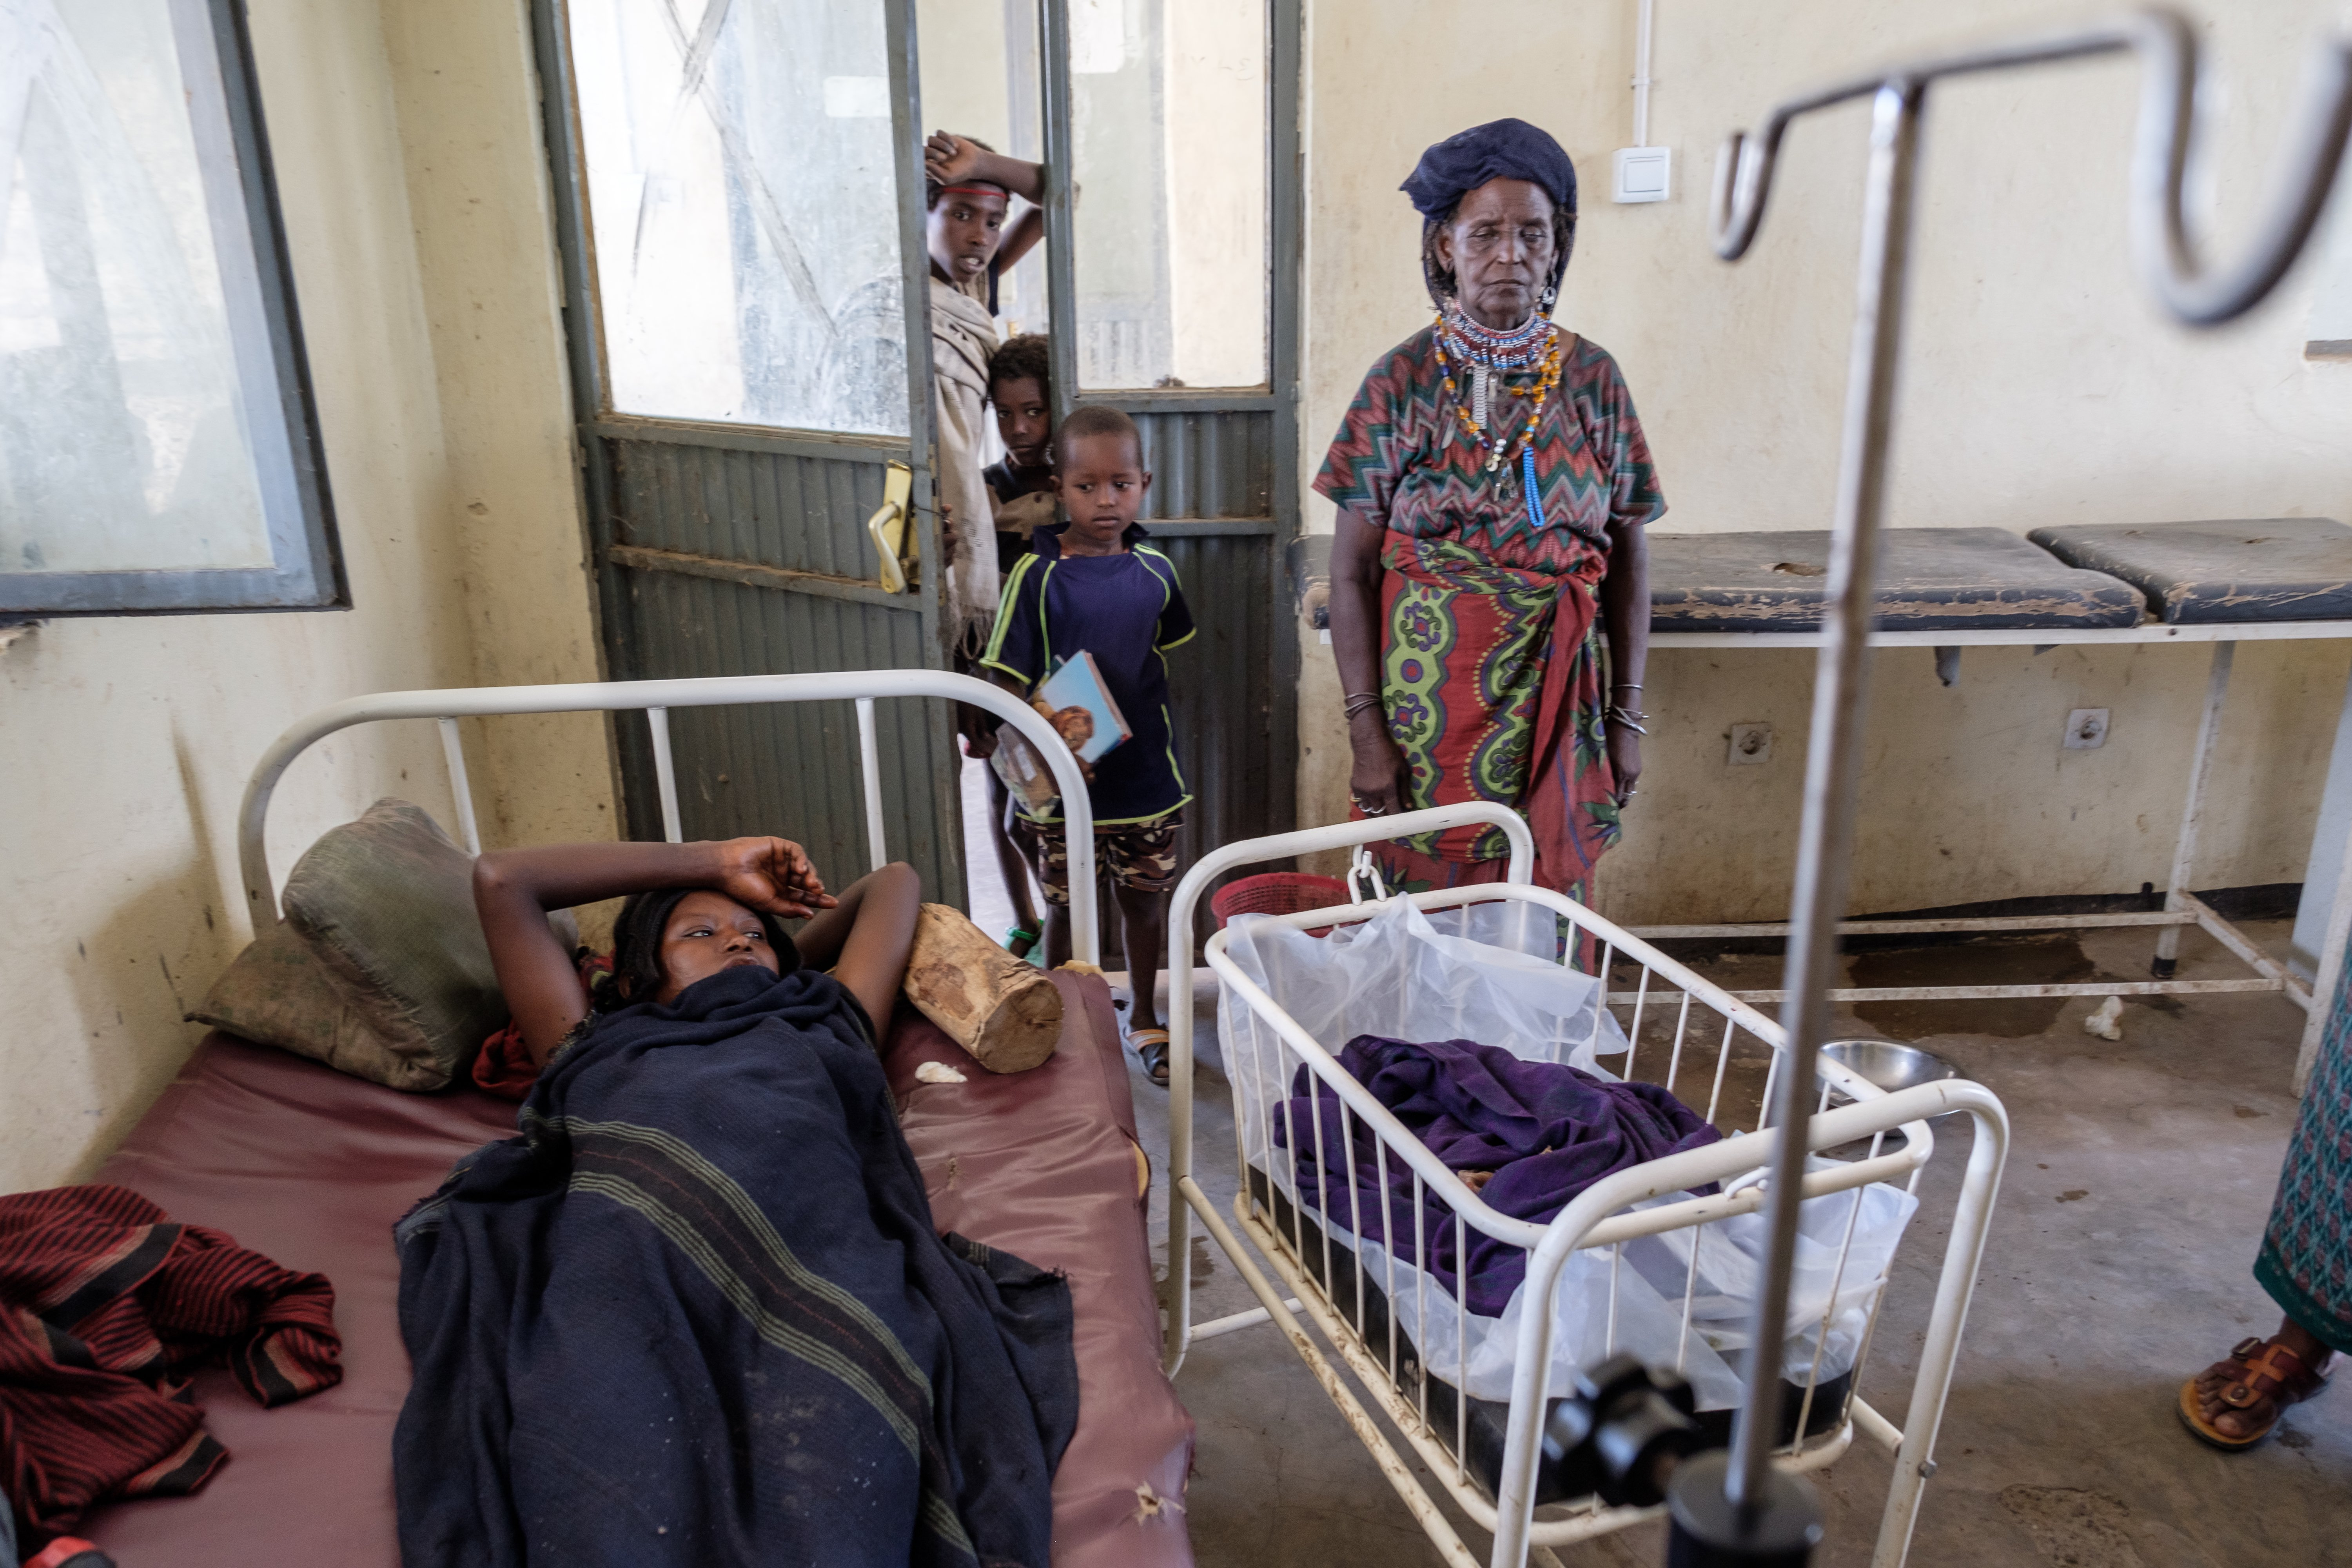 An 18-year-old girl in a hospital in Afar, Ethiopia